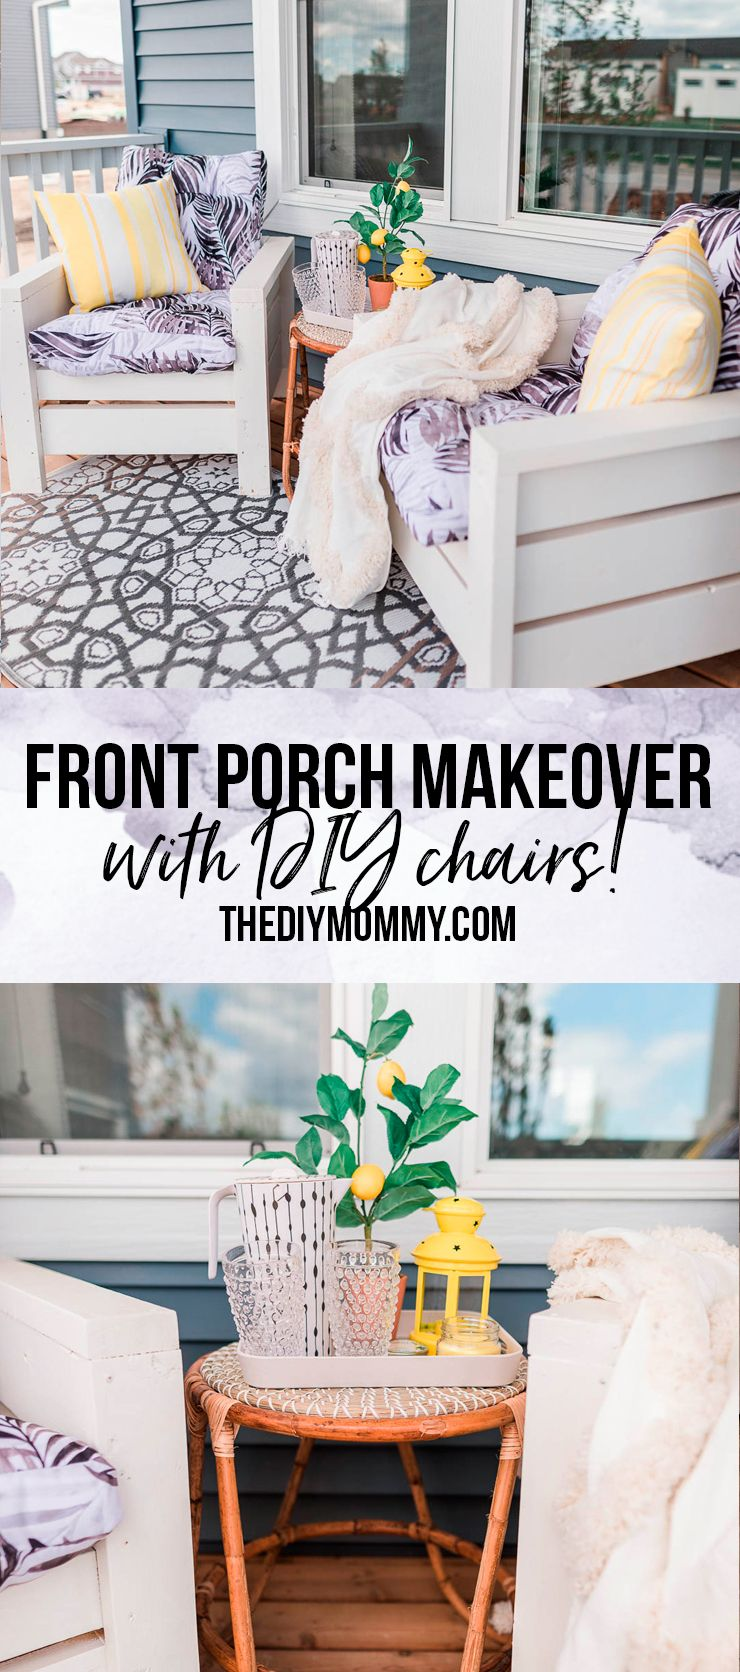 Pleasing Cheerful Front Porch Makeover With Diy Outdoor Chairs Machost Co Dining Chair Design Ideas Machostcouk